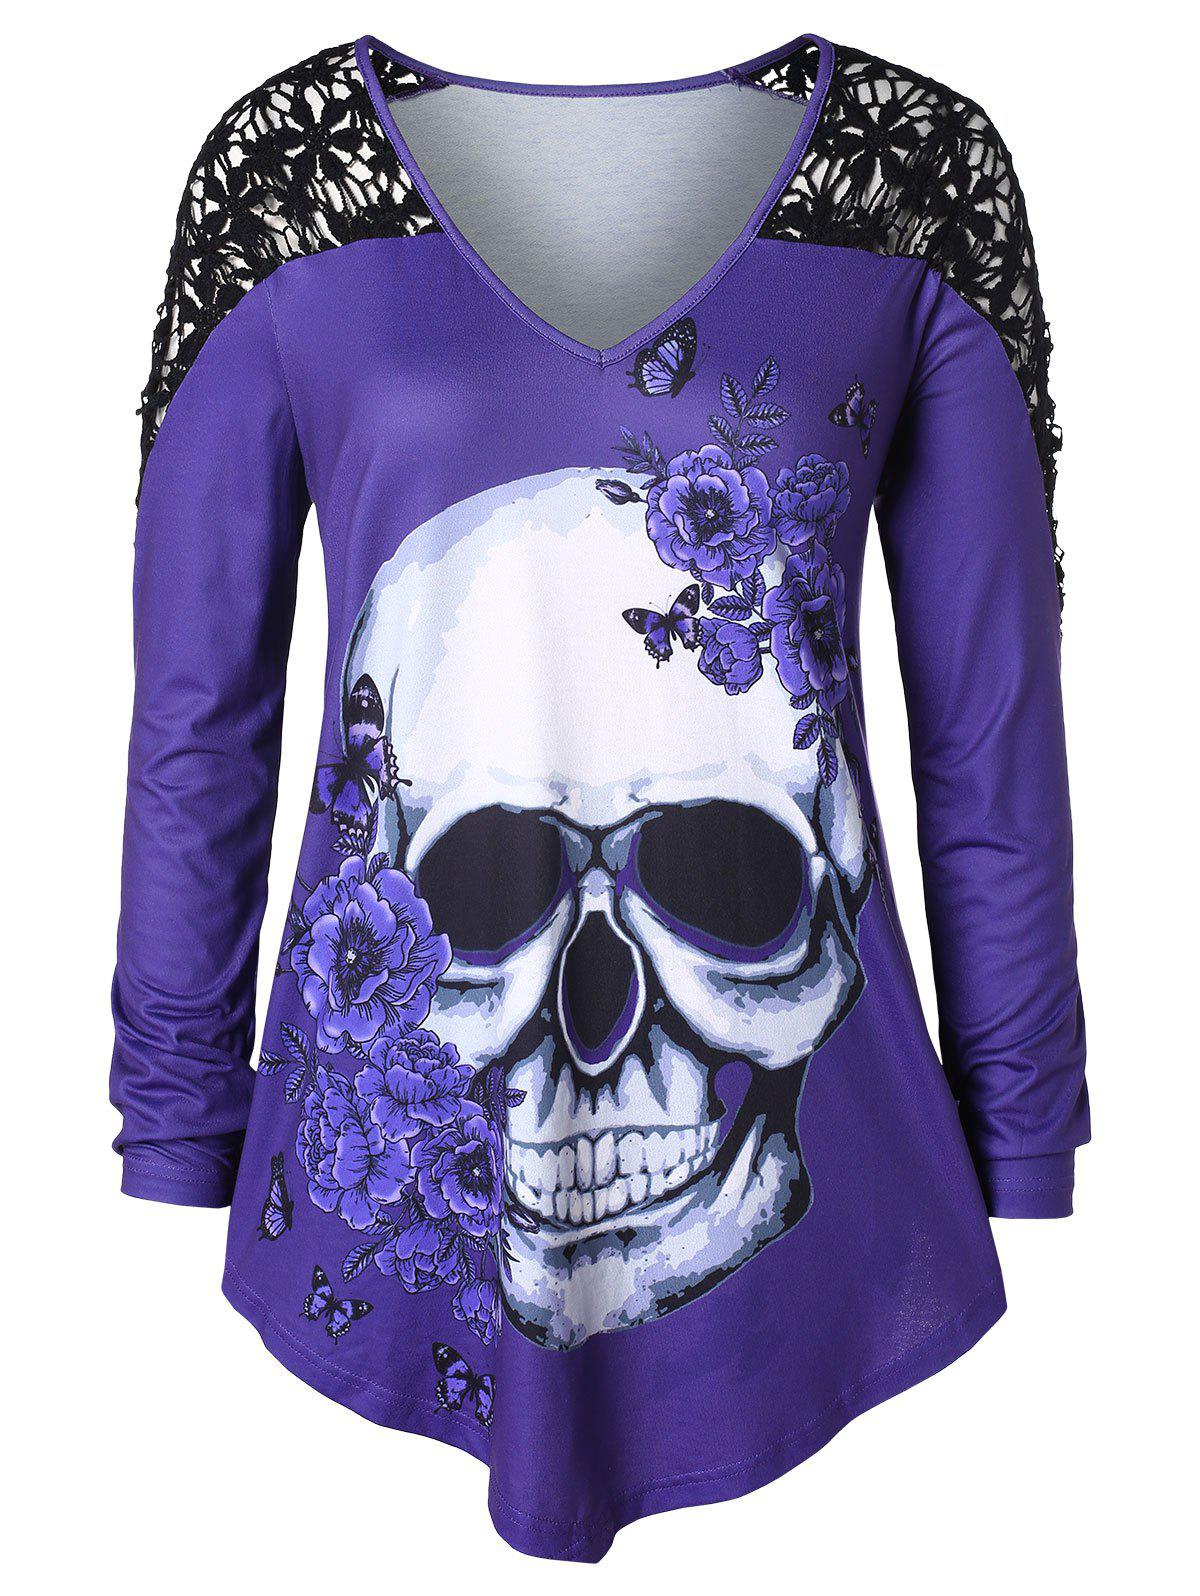 Plus Size Skull Print Crochet T-shirt - multicolor 3X